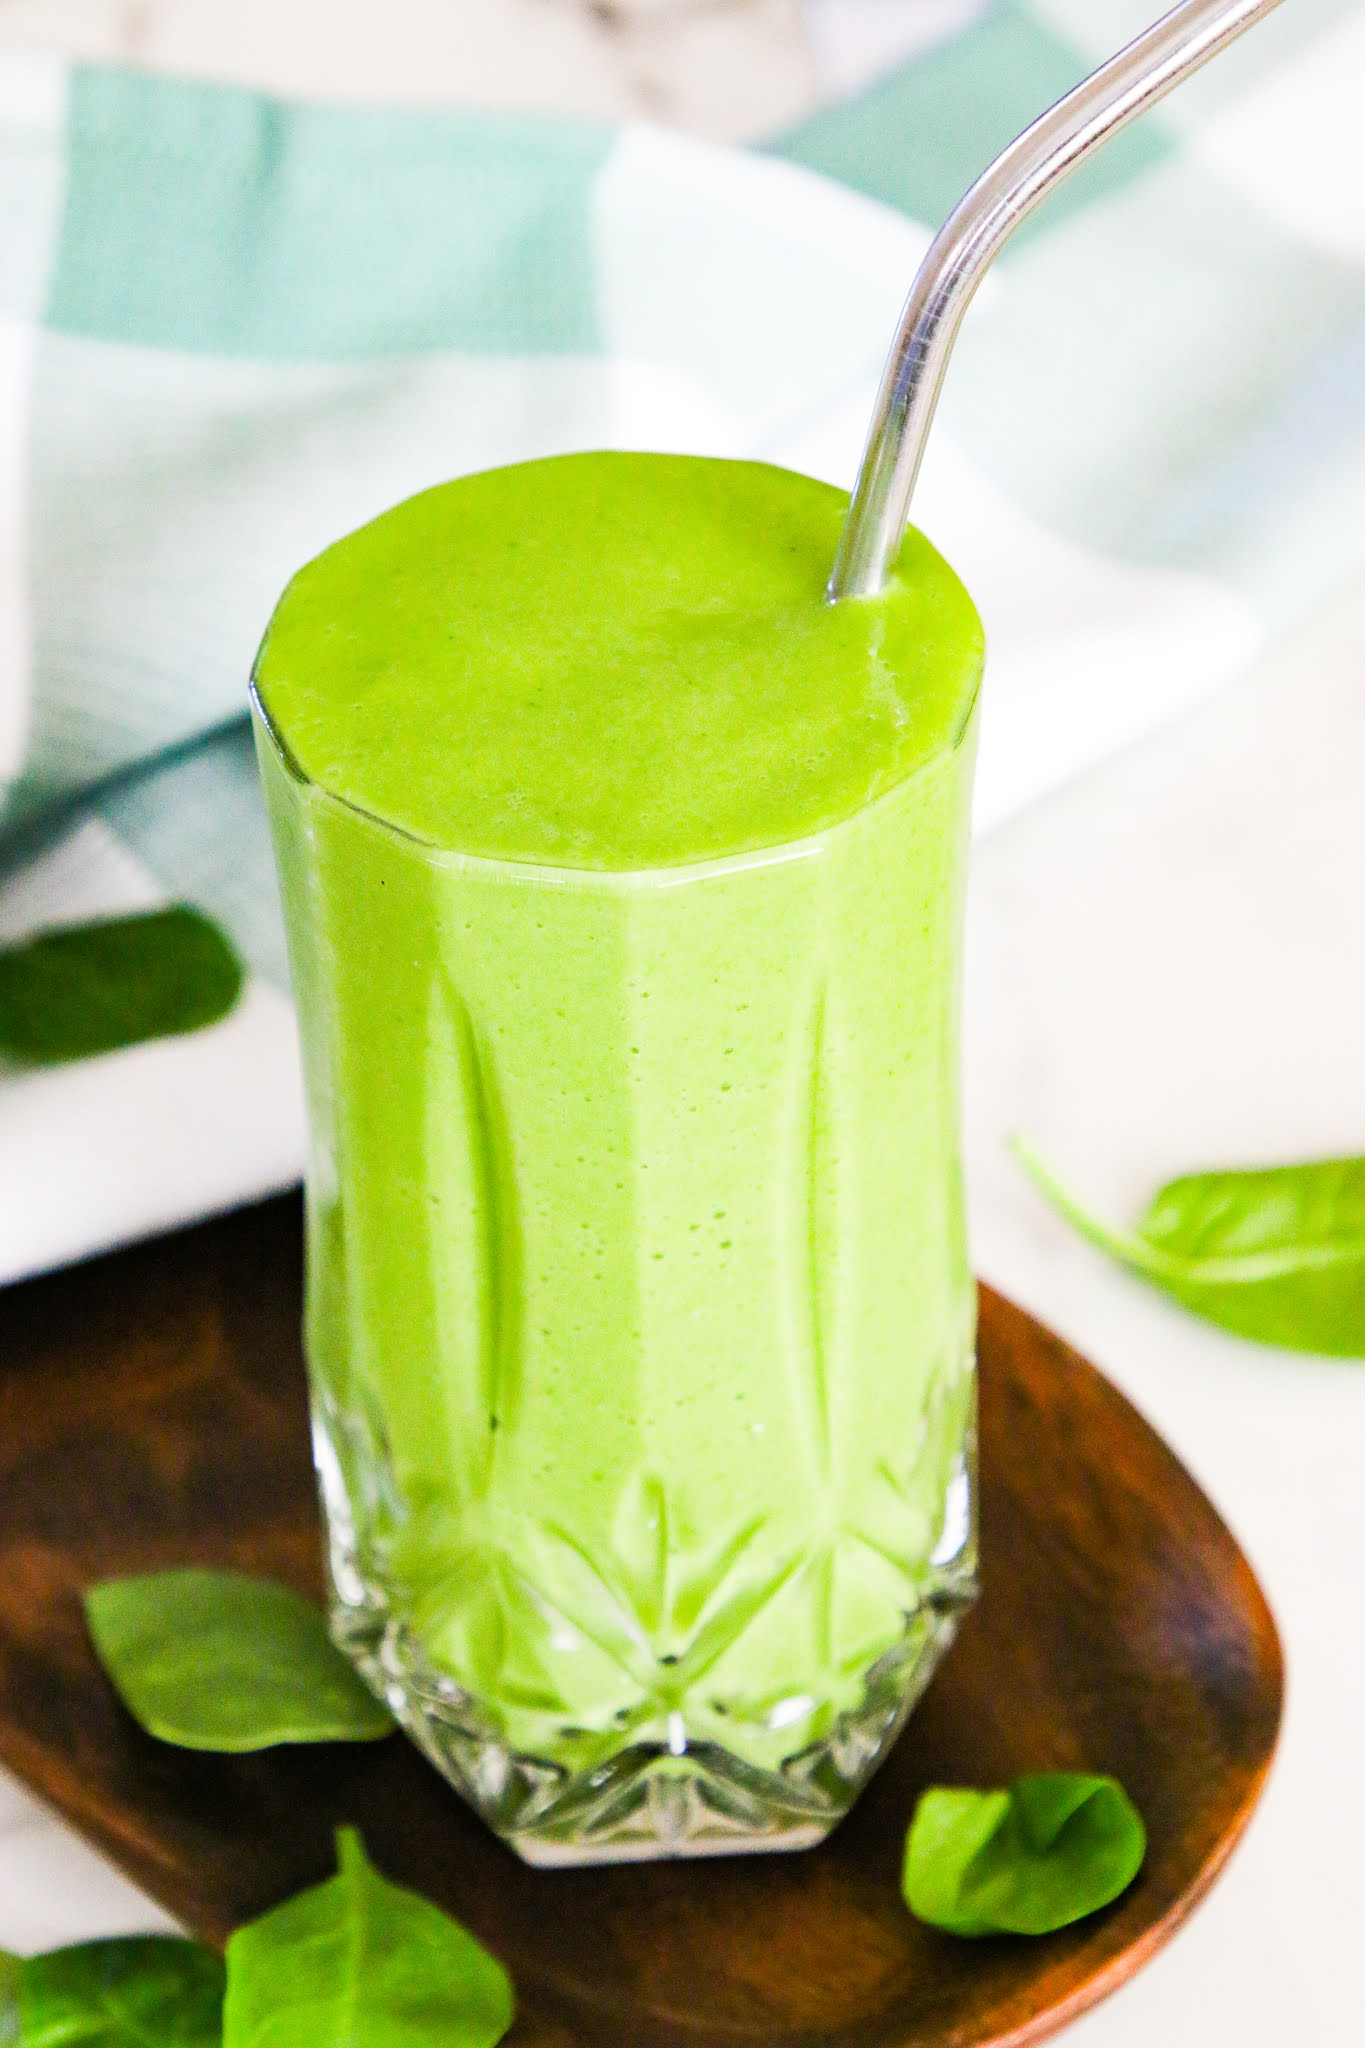 Mango Kale Green smoothie on a wooden coaster with a green dish towel in the background on a marble table